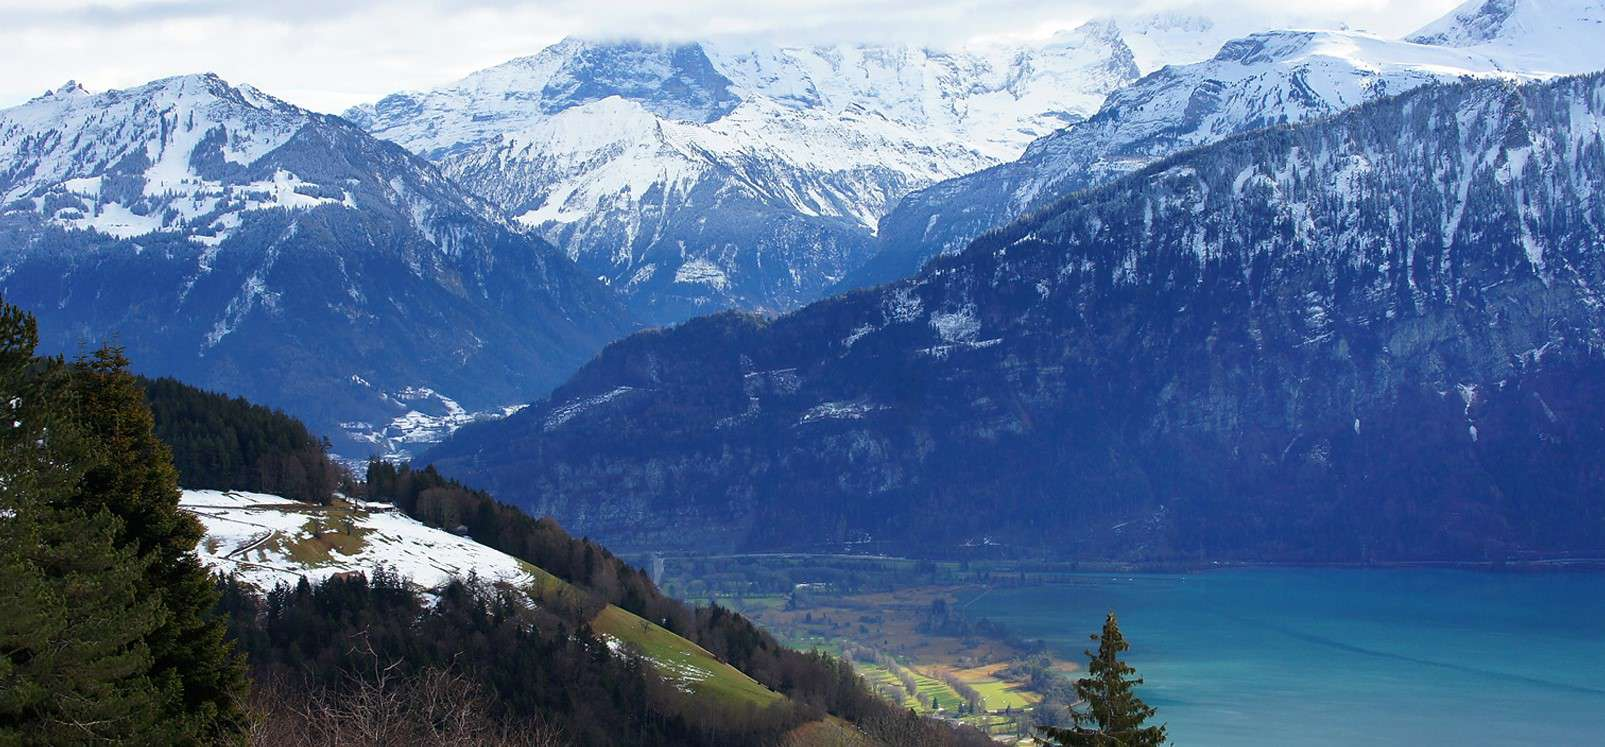 Swiss Alps - natural wonders in Europe